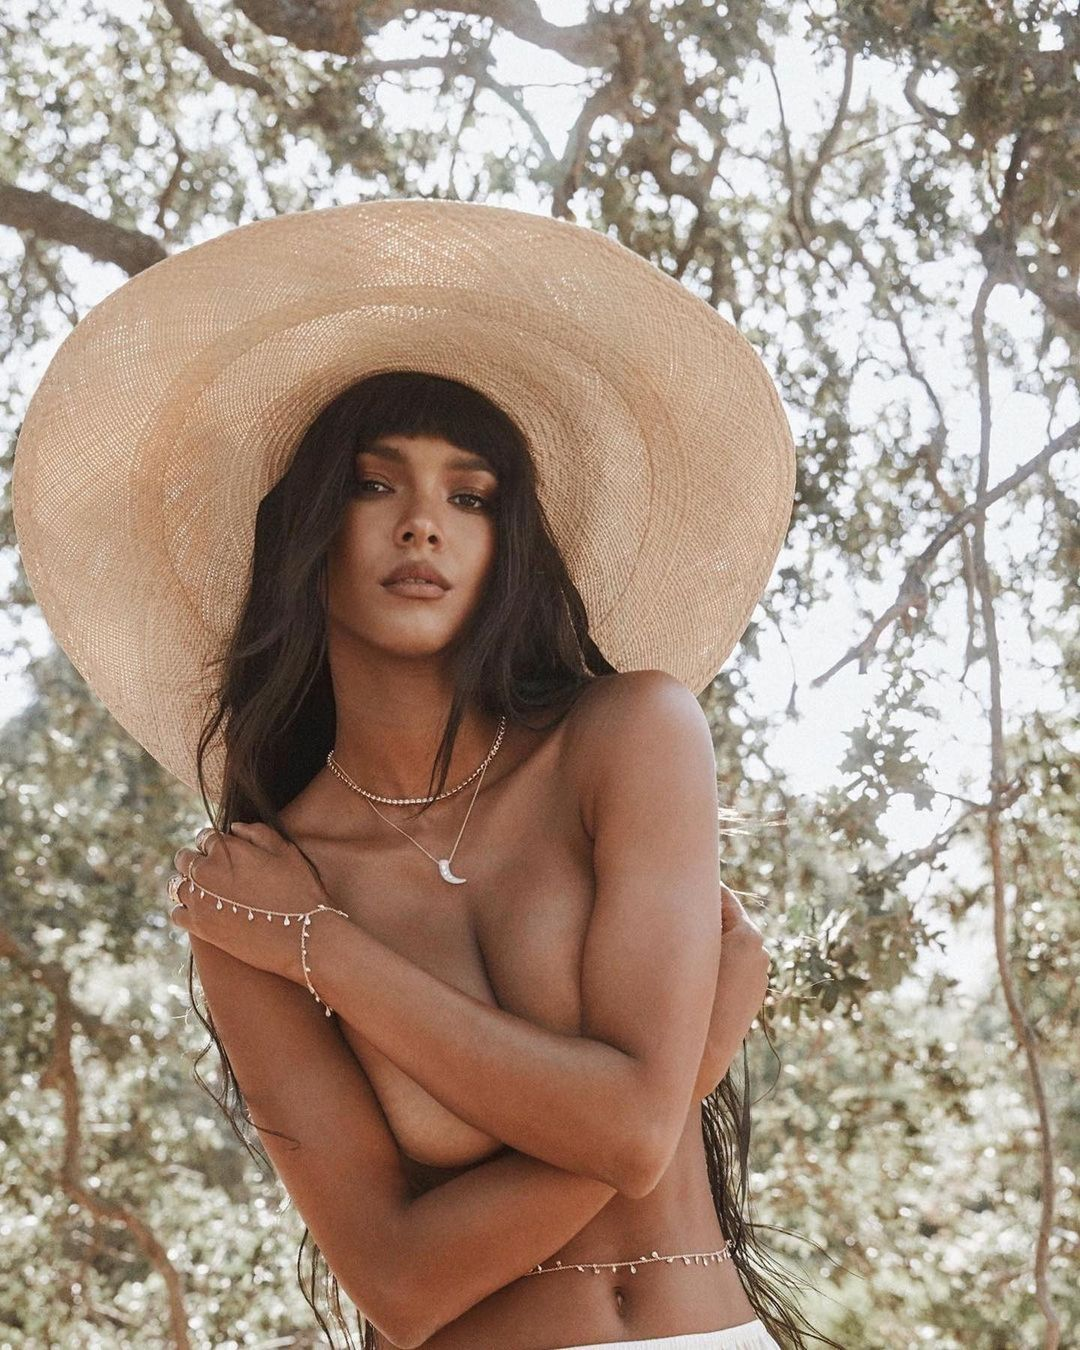 Model Lais Ribeiro made her first nude photo model in 2021 4